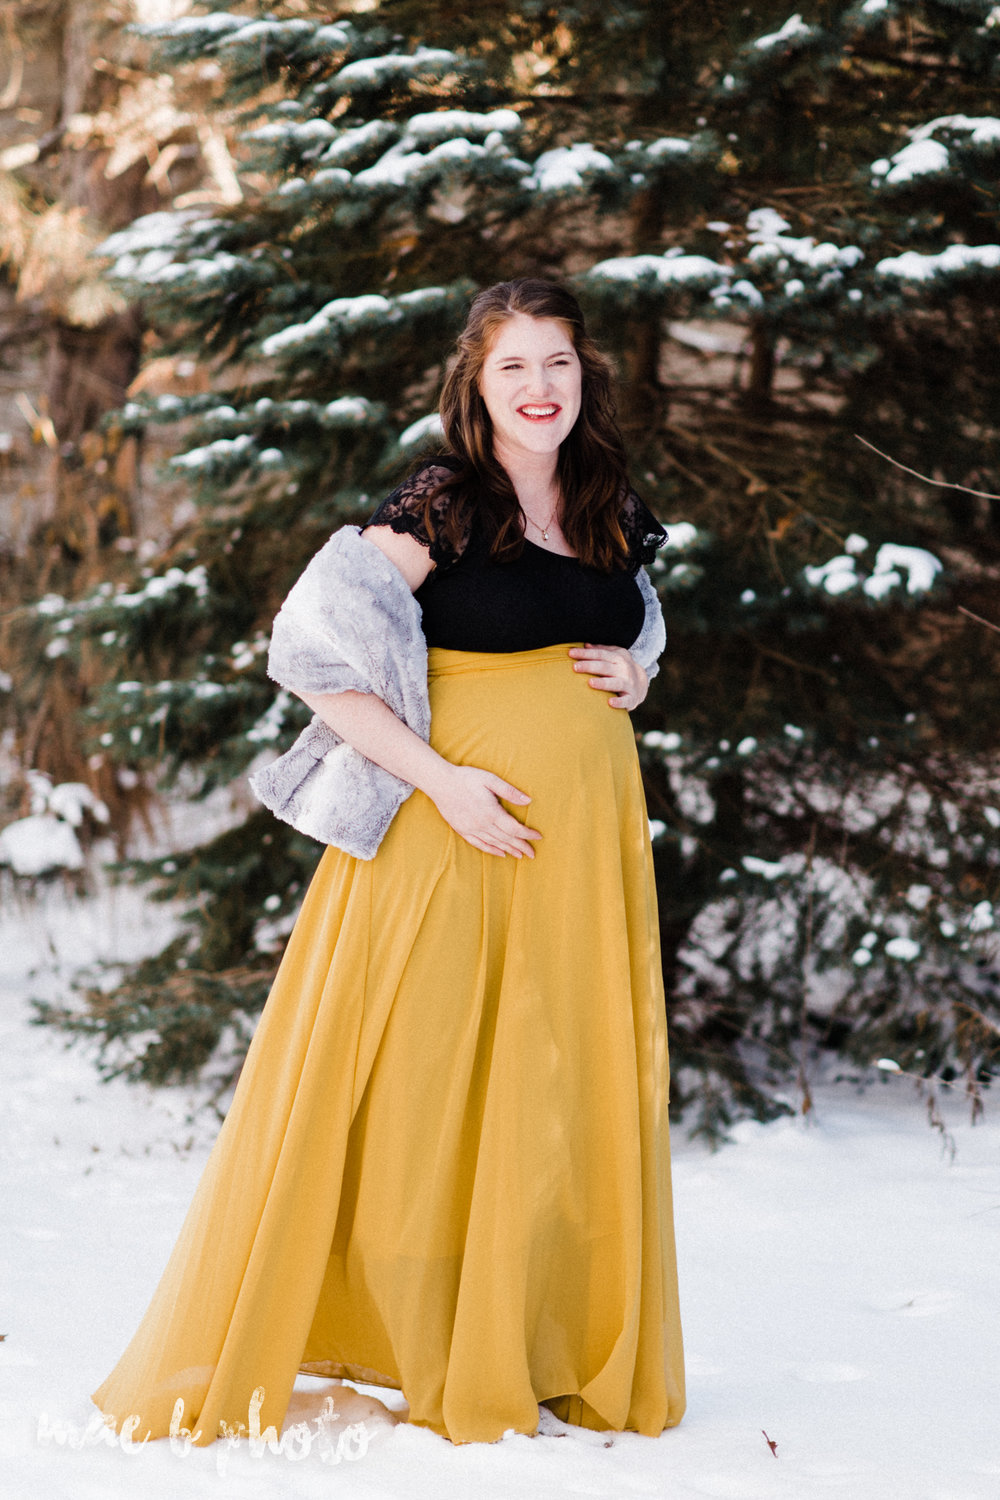 allie's in home lifestyle winter maternity shoot in cleveland ohio photographed by youngstown wedding photographer mae b photo-29.jpg